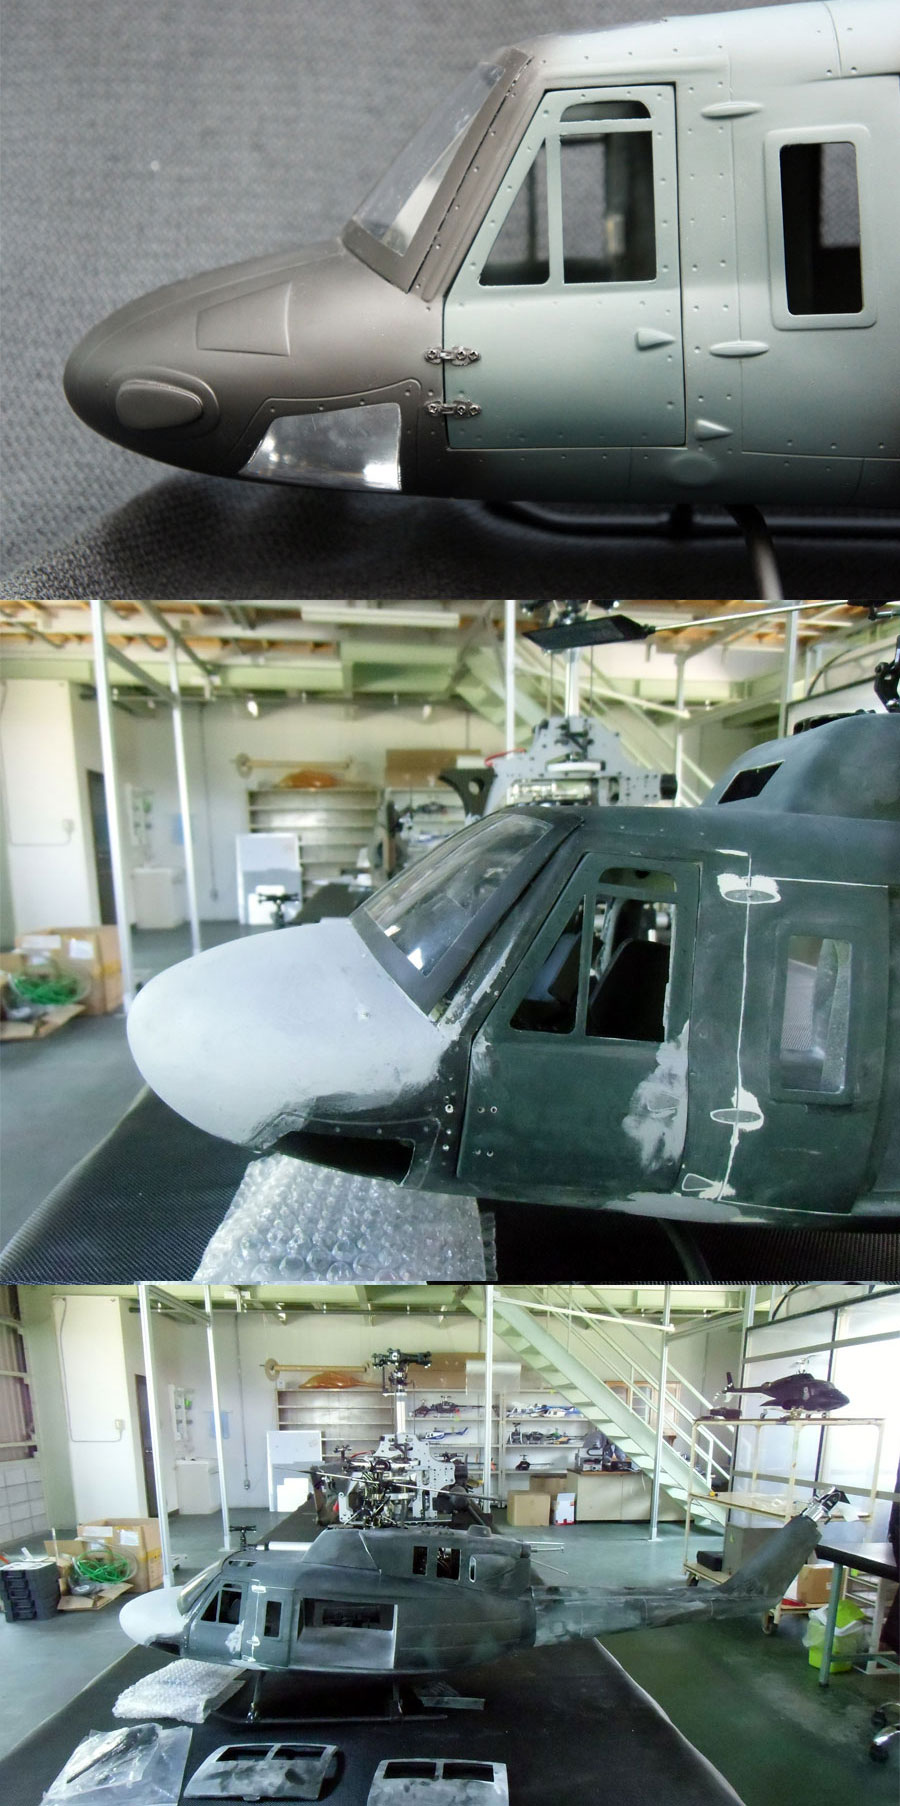 UH-1Nノーズ加工